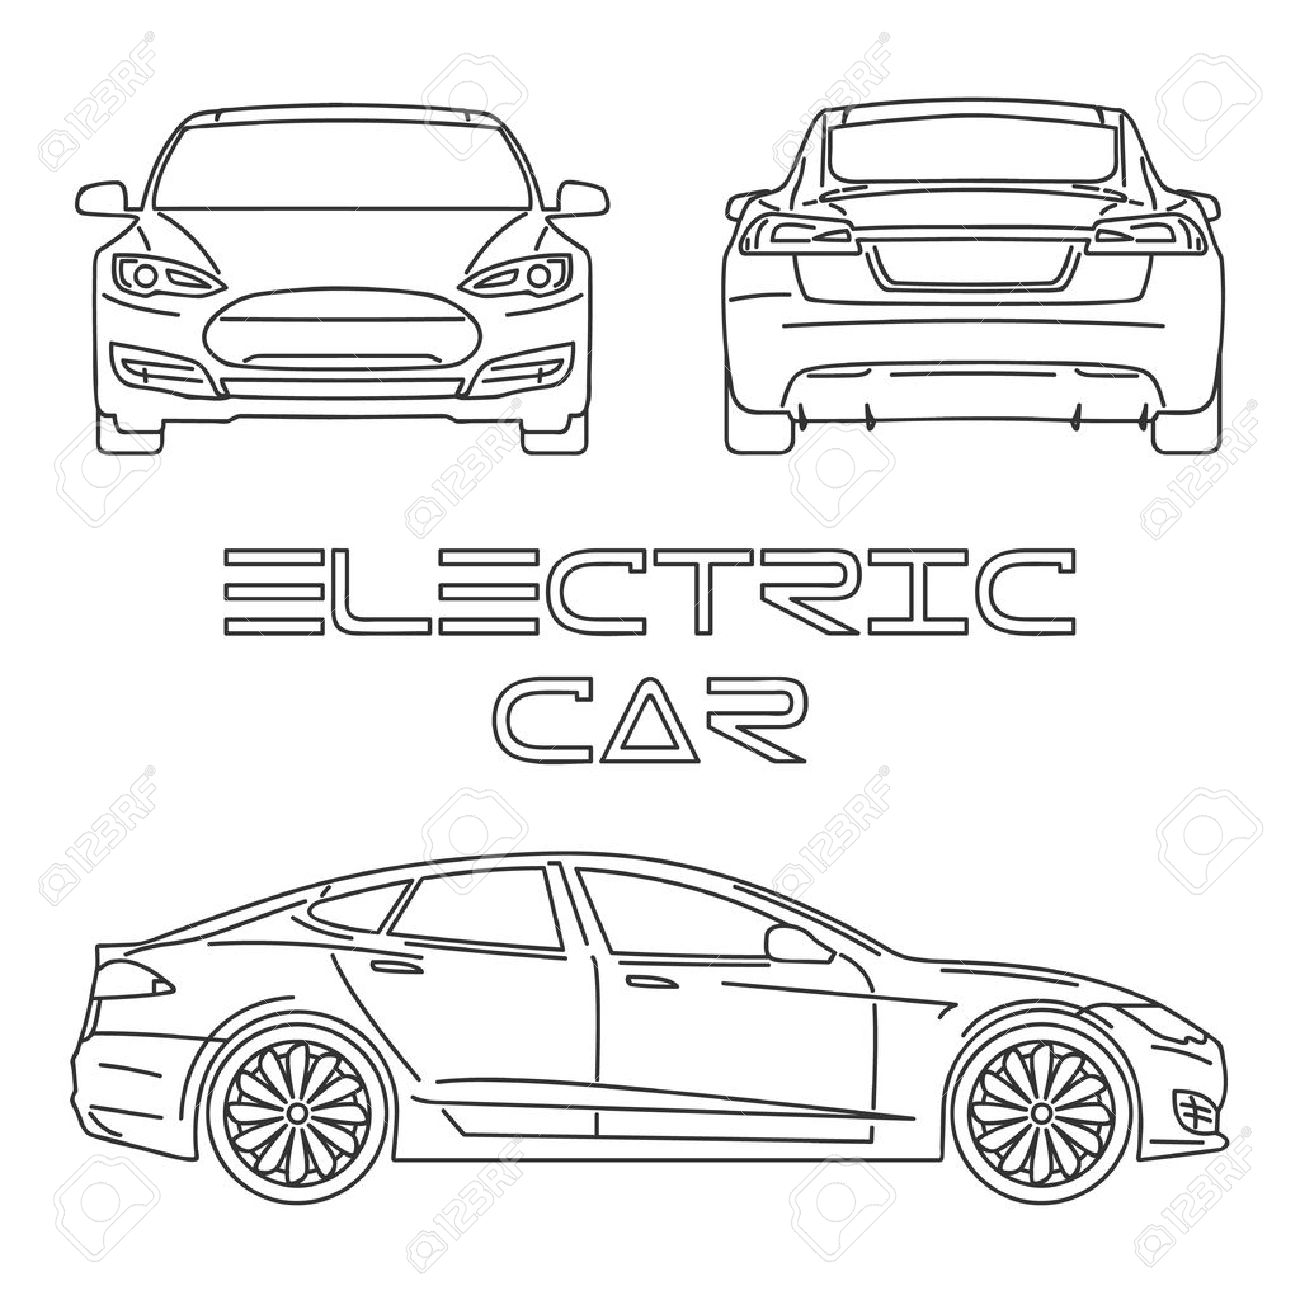 1300x1300 silhouette of electric car front view back view side view